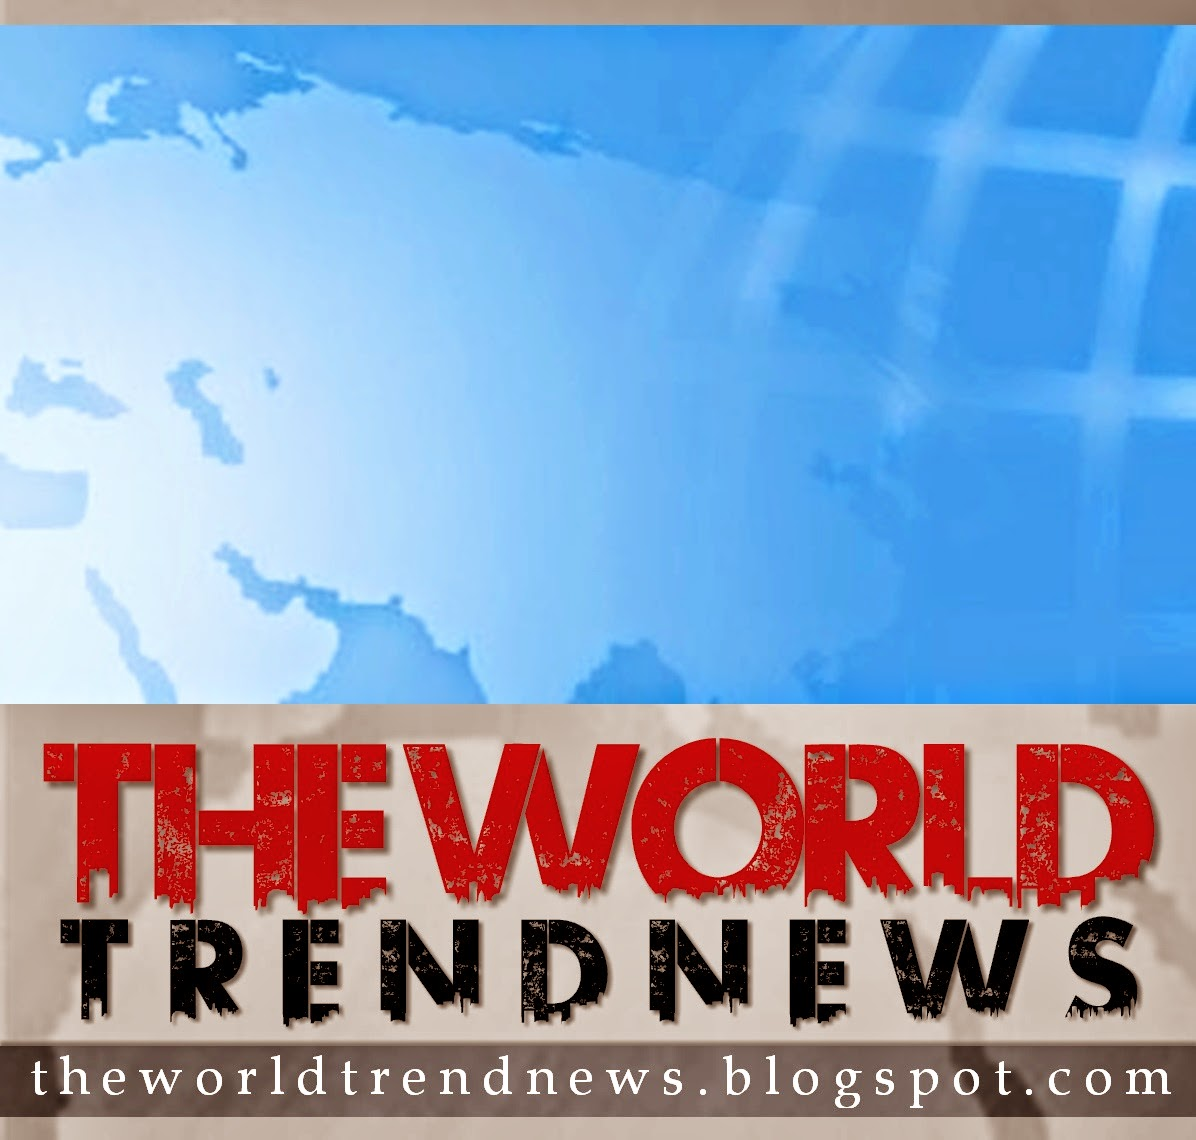 Trend Update,     Trend News,     World Trend News ,     Press Room,     Our History,World Breaking News, World, World News, Trends News, Trends Update, Sports Opinion,